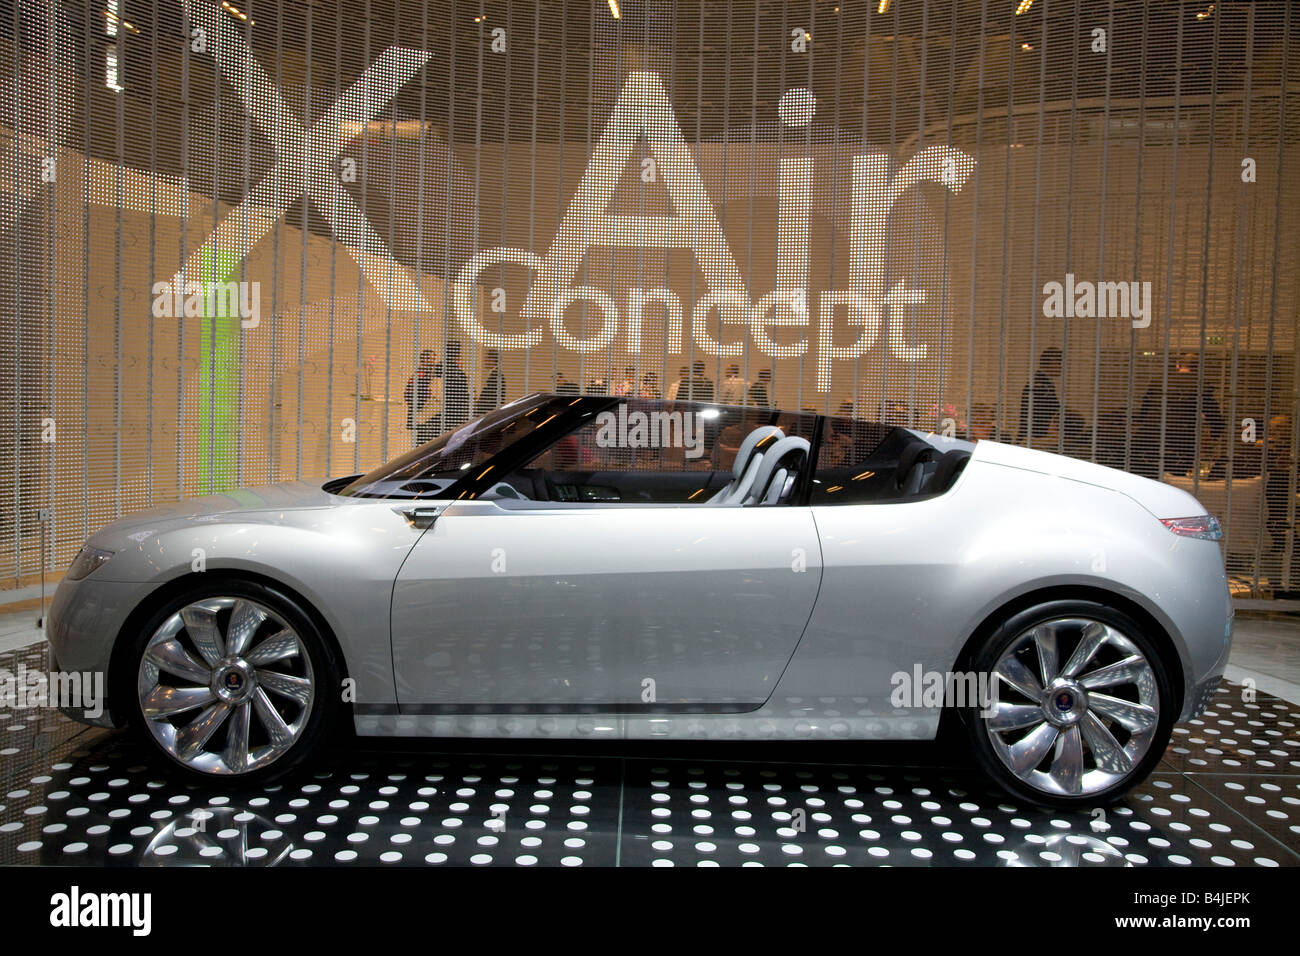 Saab 9-X Air Concept on show at a Motor Show 2008. - Stock Image